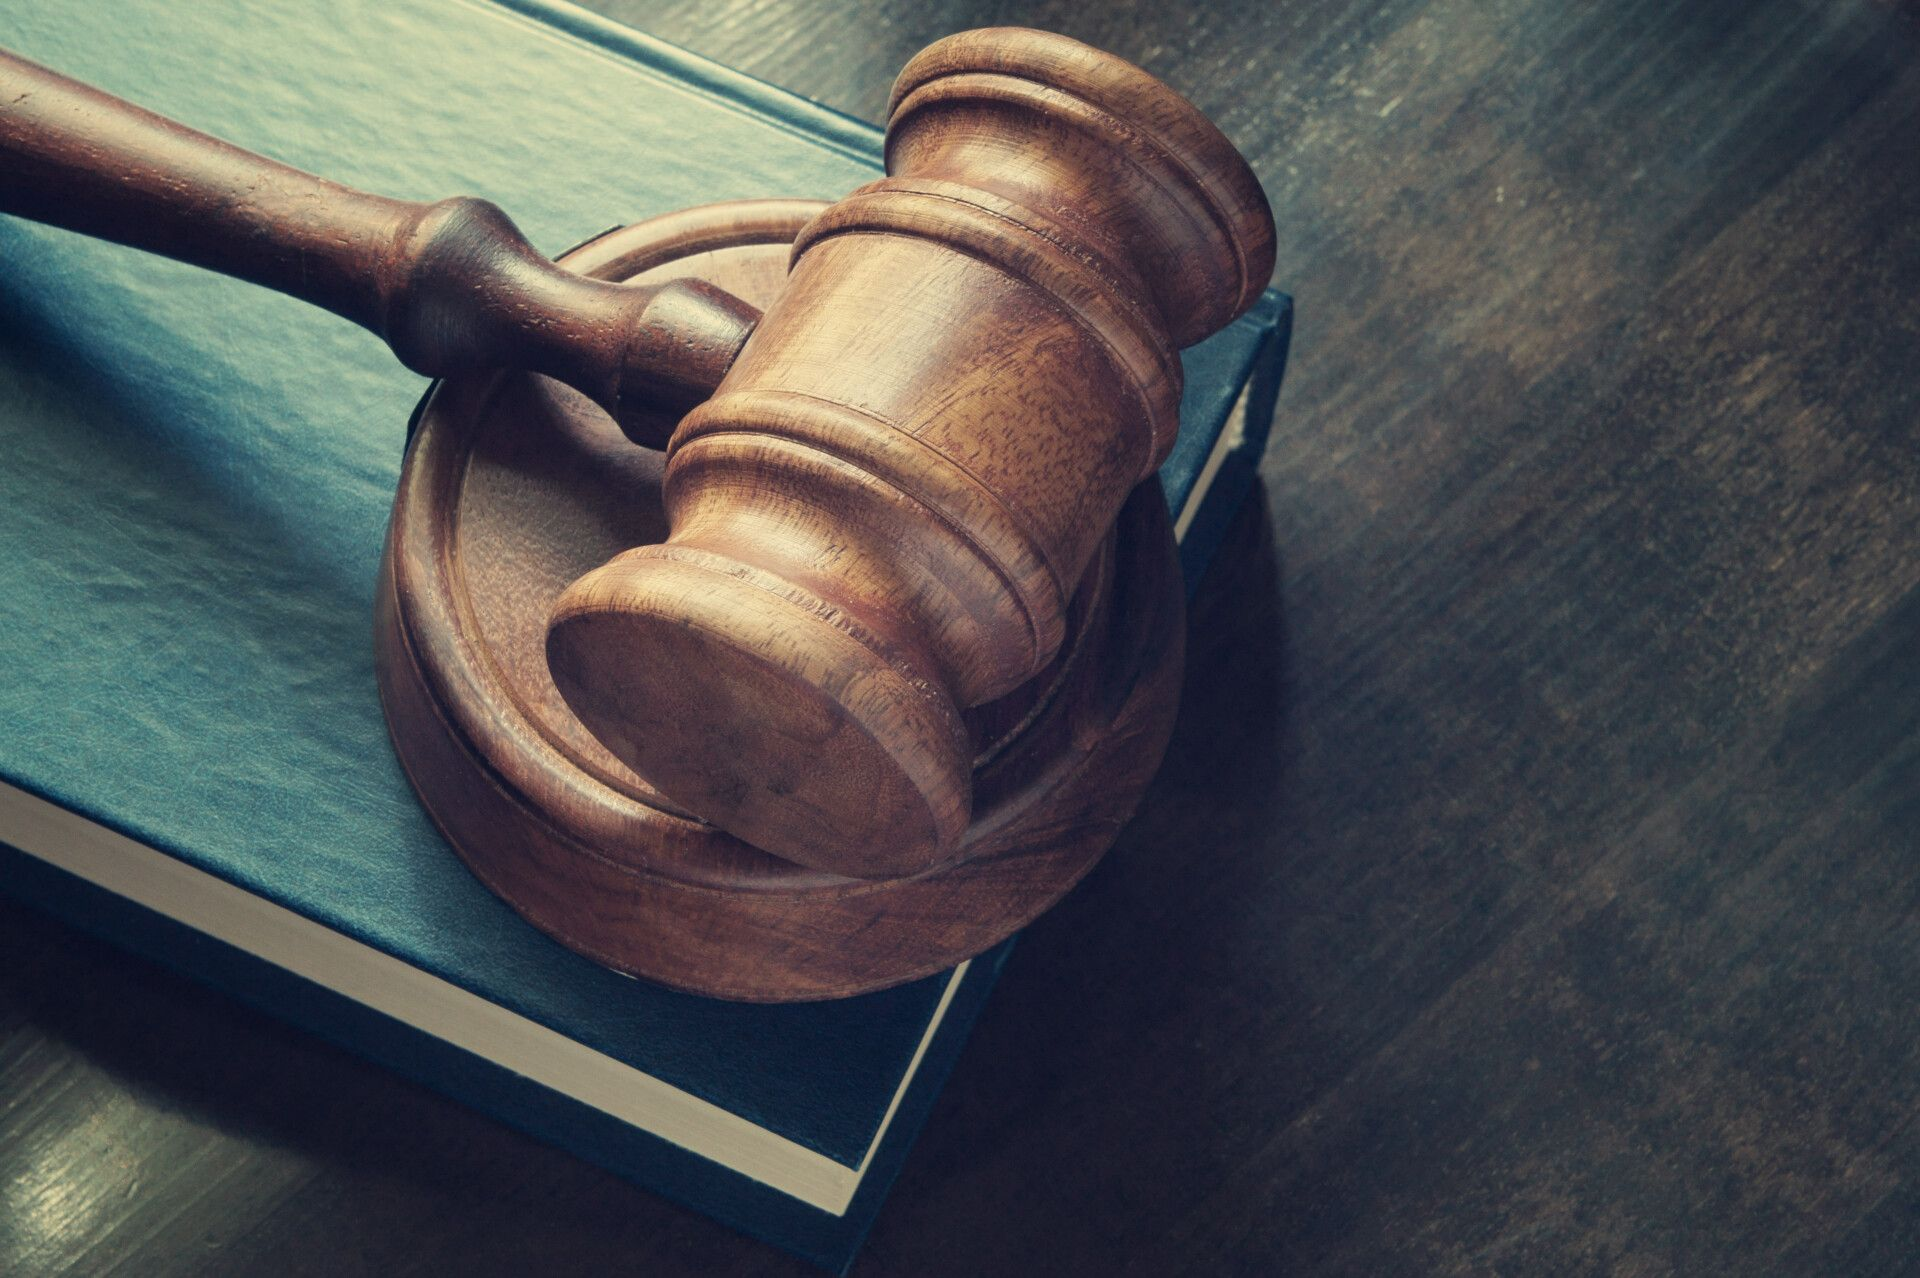 Image of a wooden gavel on top of a book